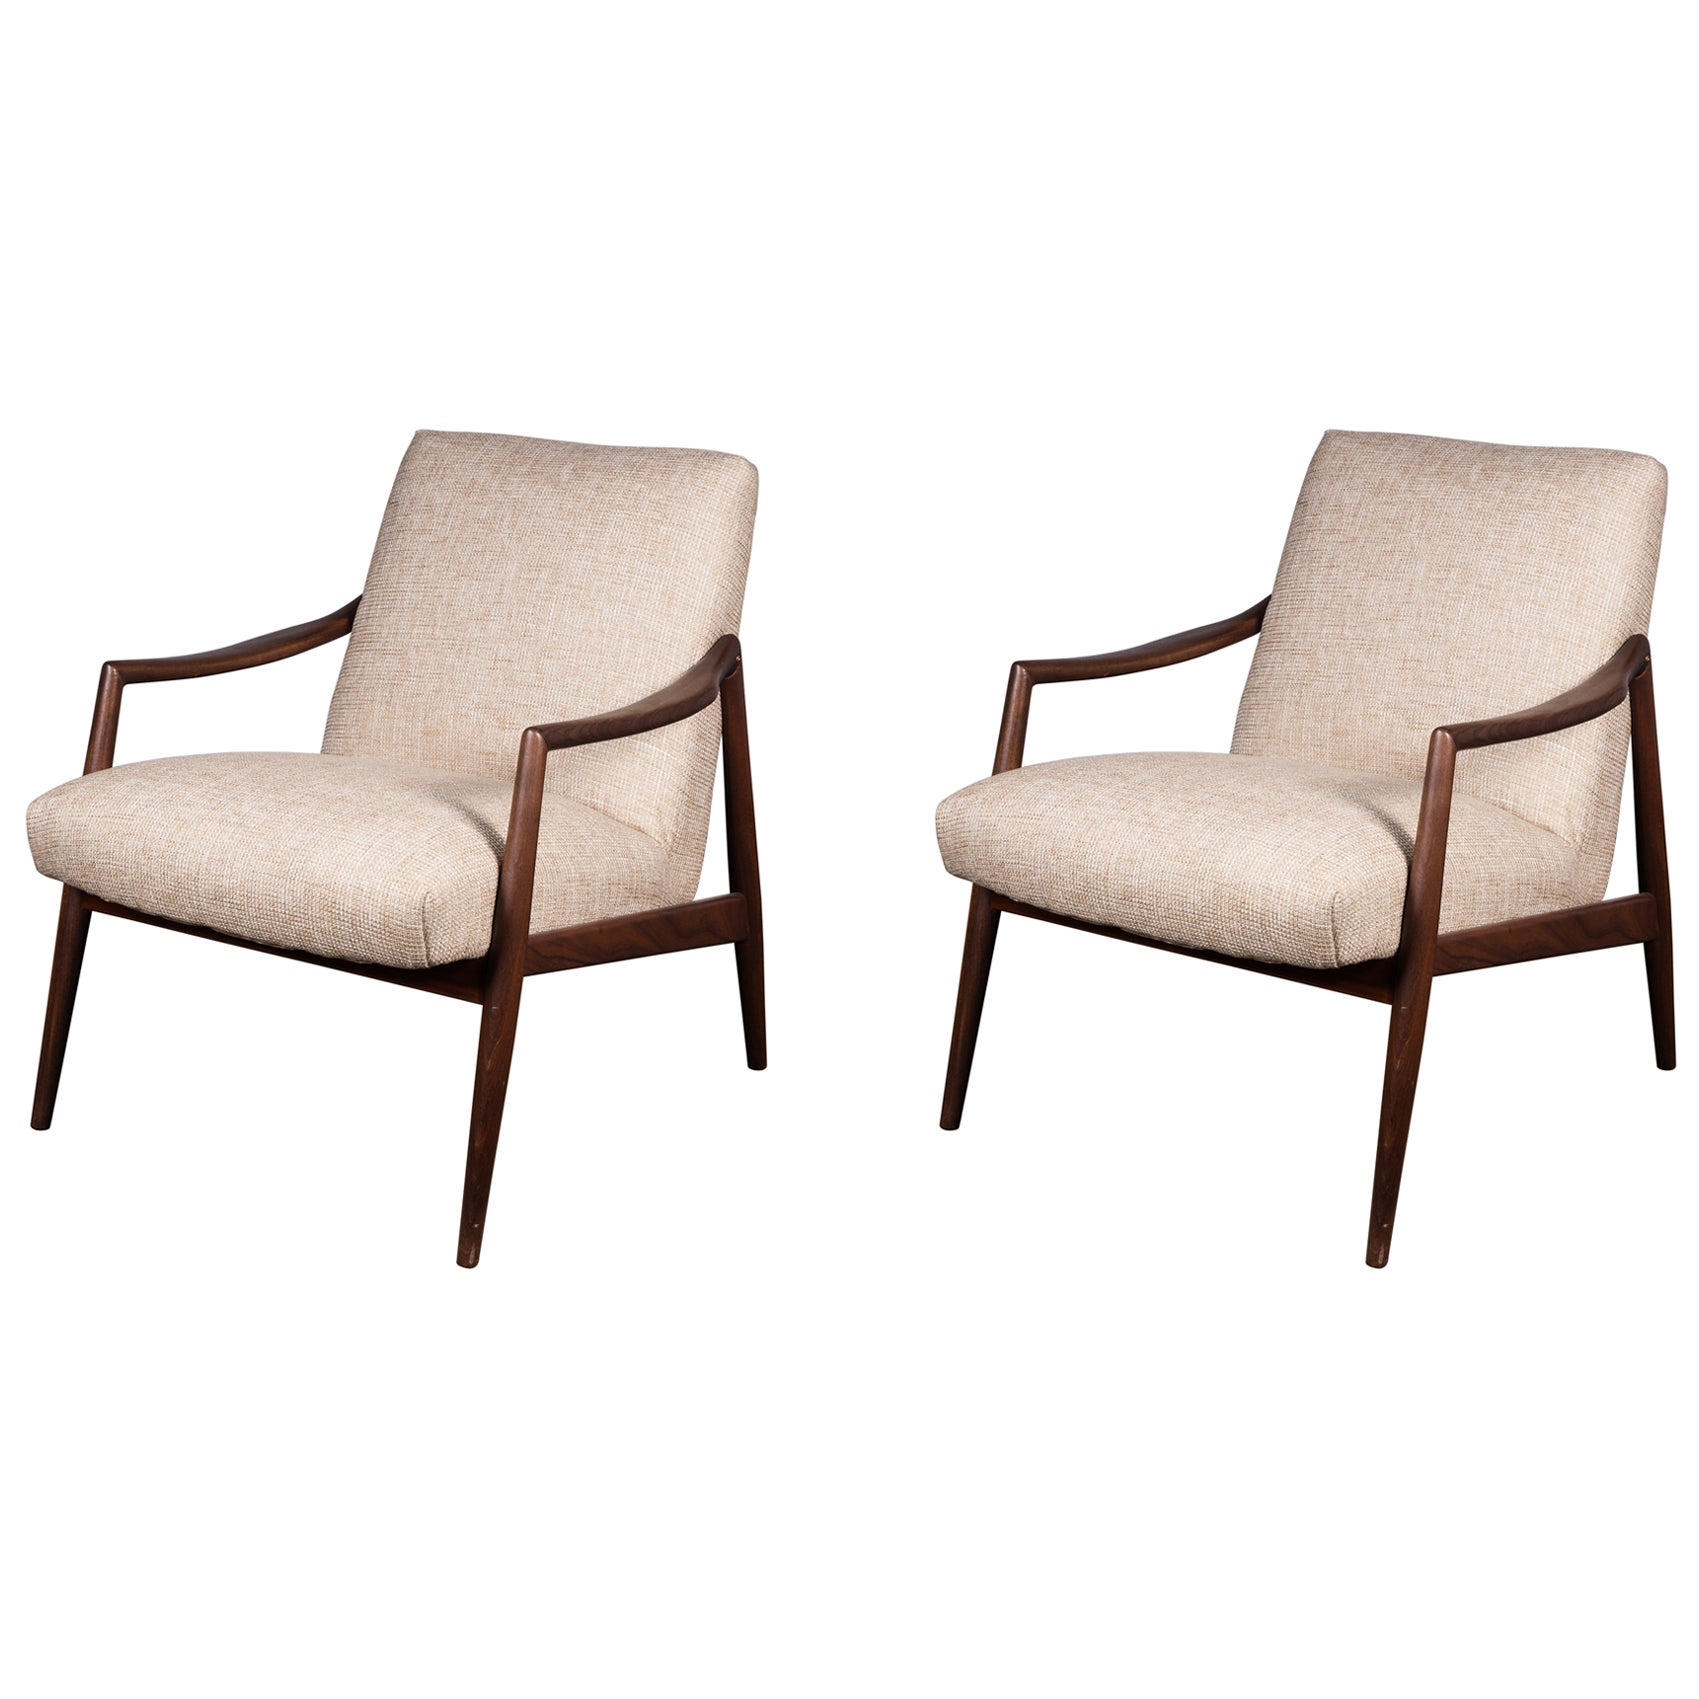 Pair of 1950s Teak Armchairs by Hartmut Lohmeyer Upholstered à la Coco Chanel